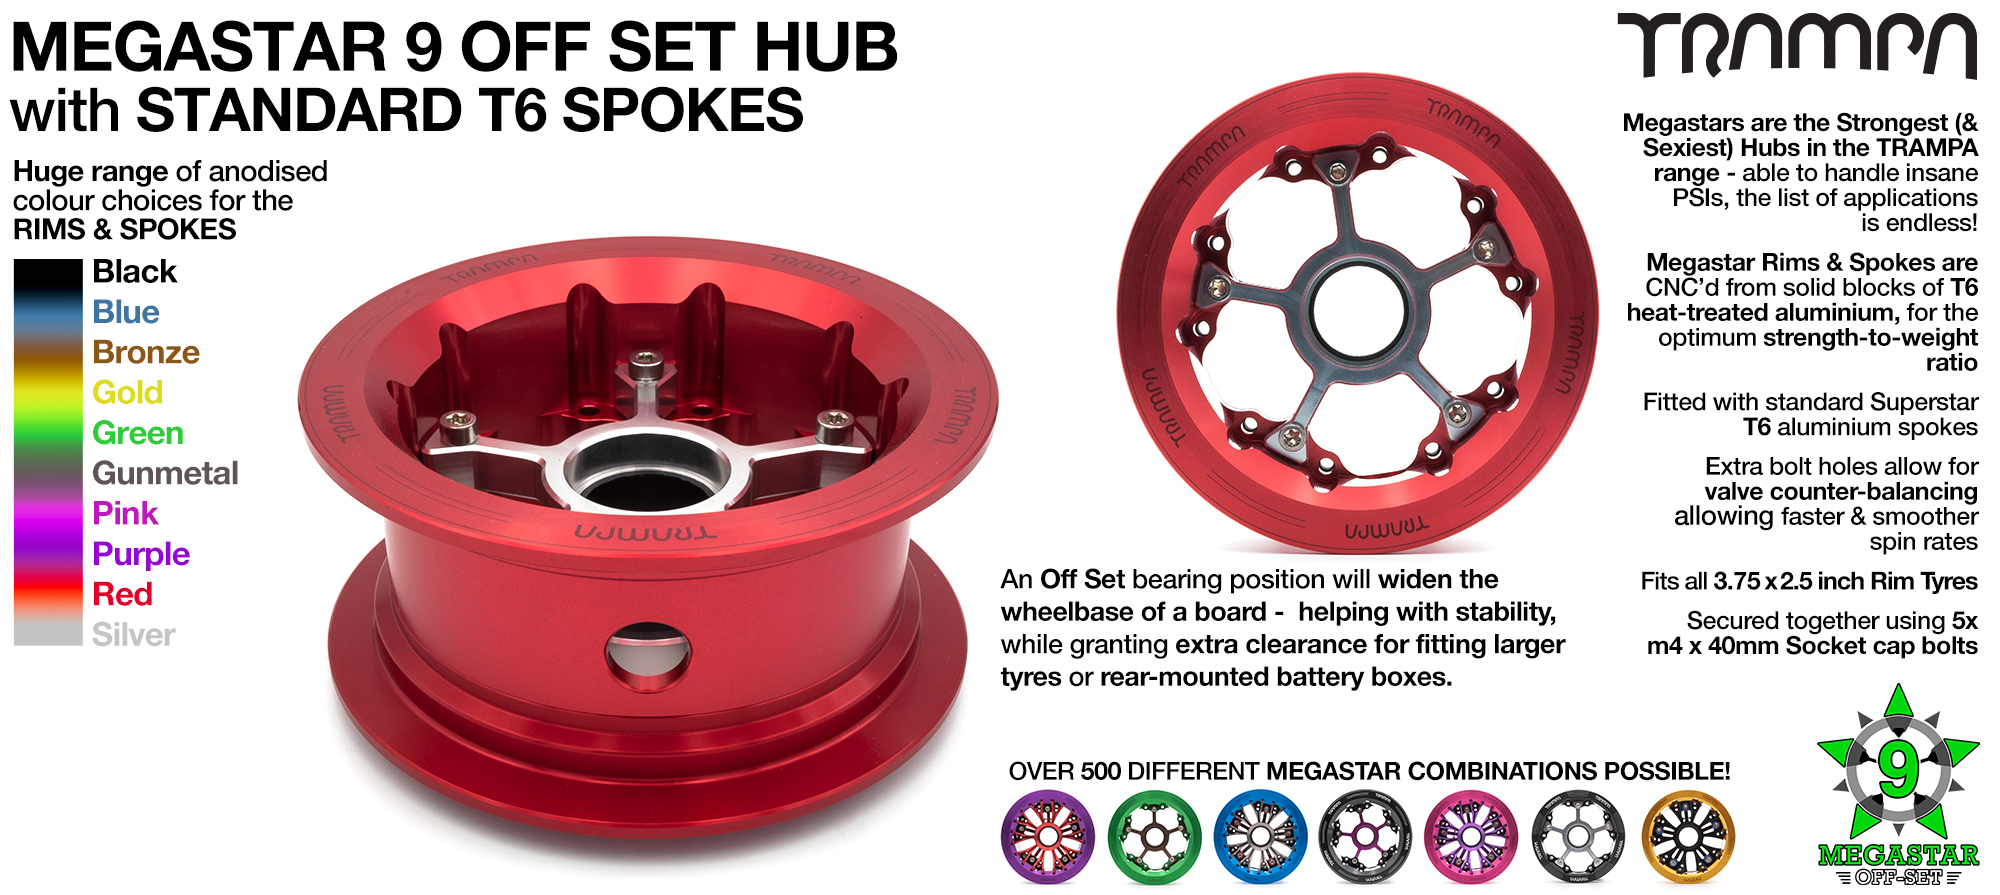 CUSTOM 9 Inch MEGASTAR HUB! Build the SUPERSTAR Hub of your dreams!! Any combination possible...